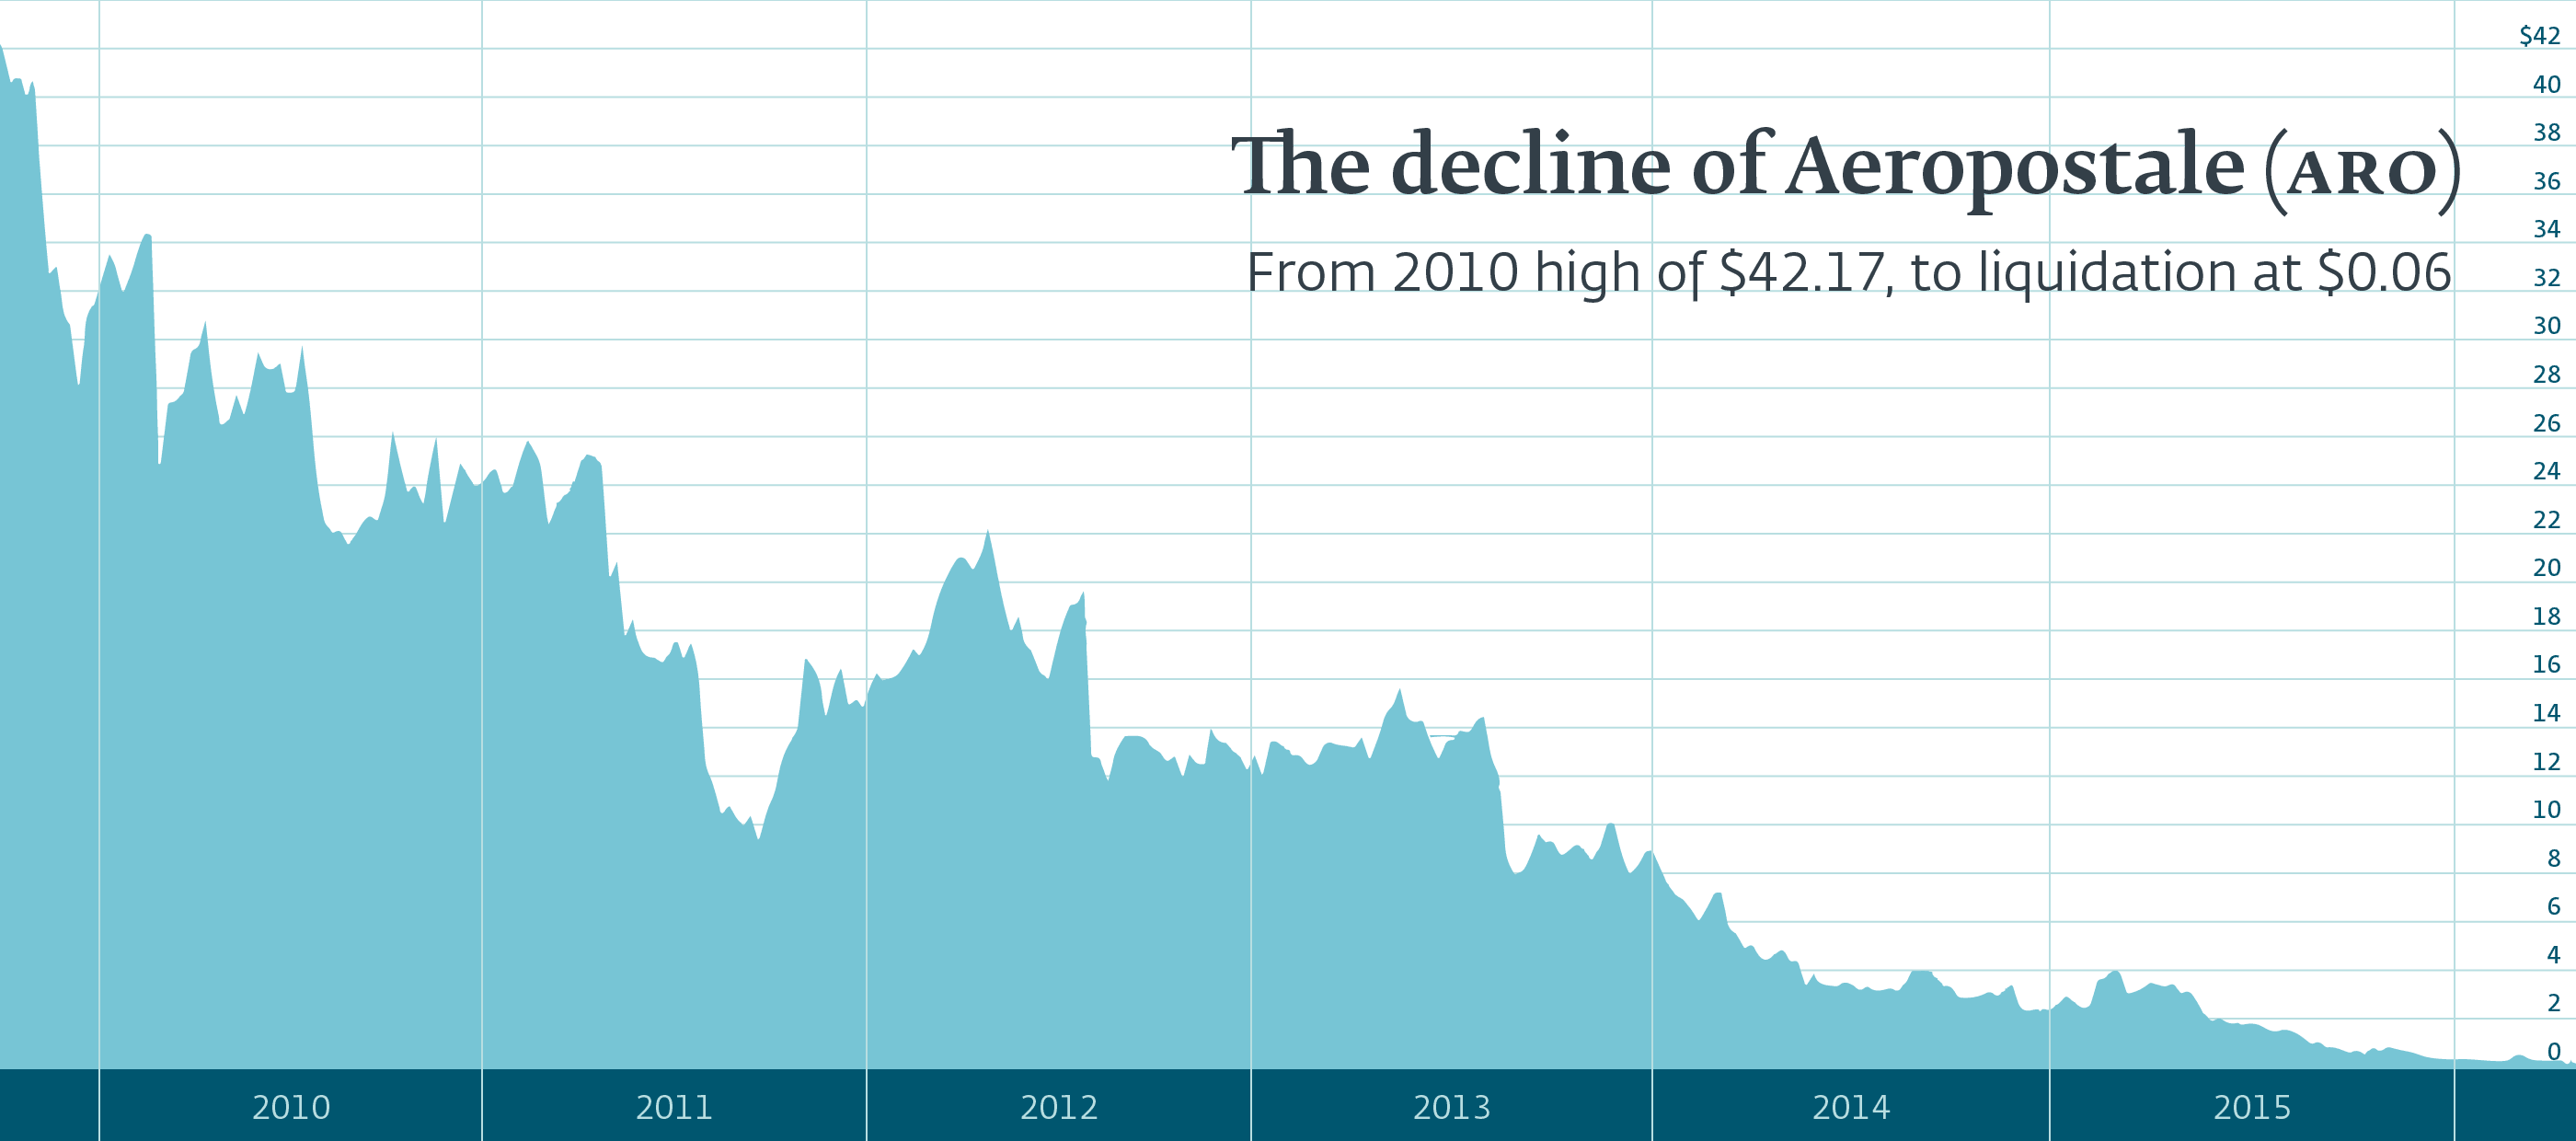 Illustrated: Aeropostale Stock Decline, 2010 to 2015